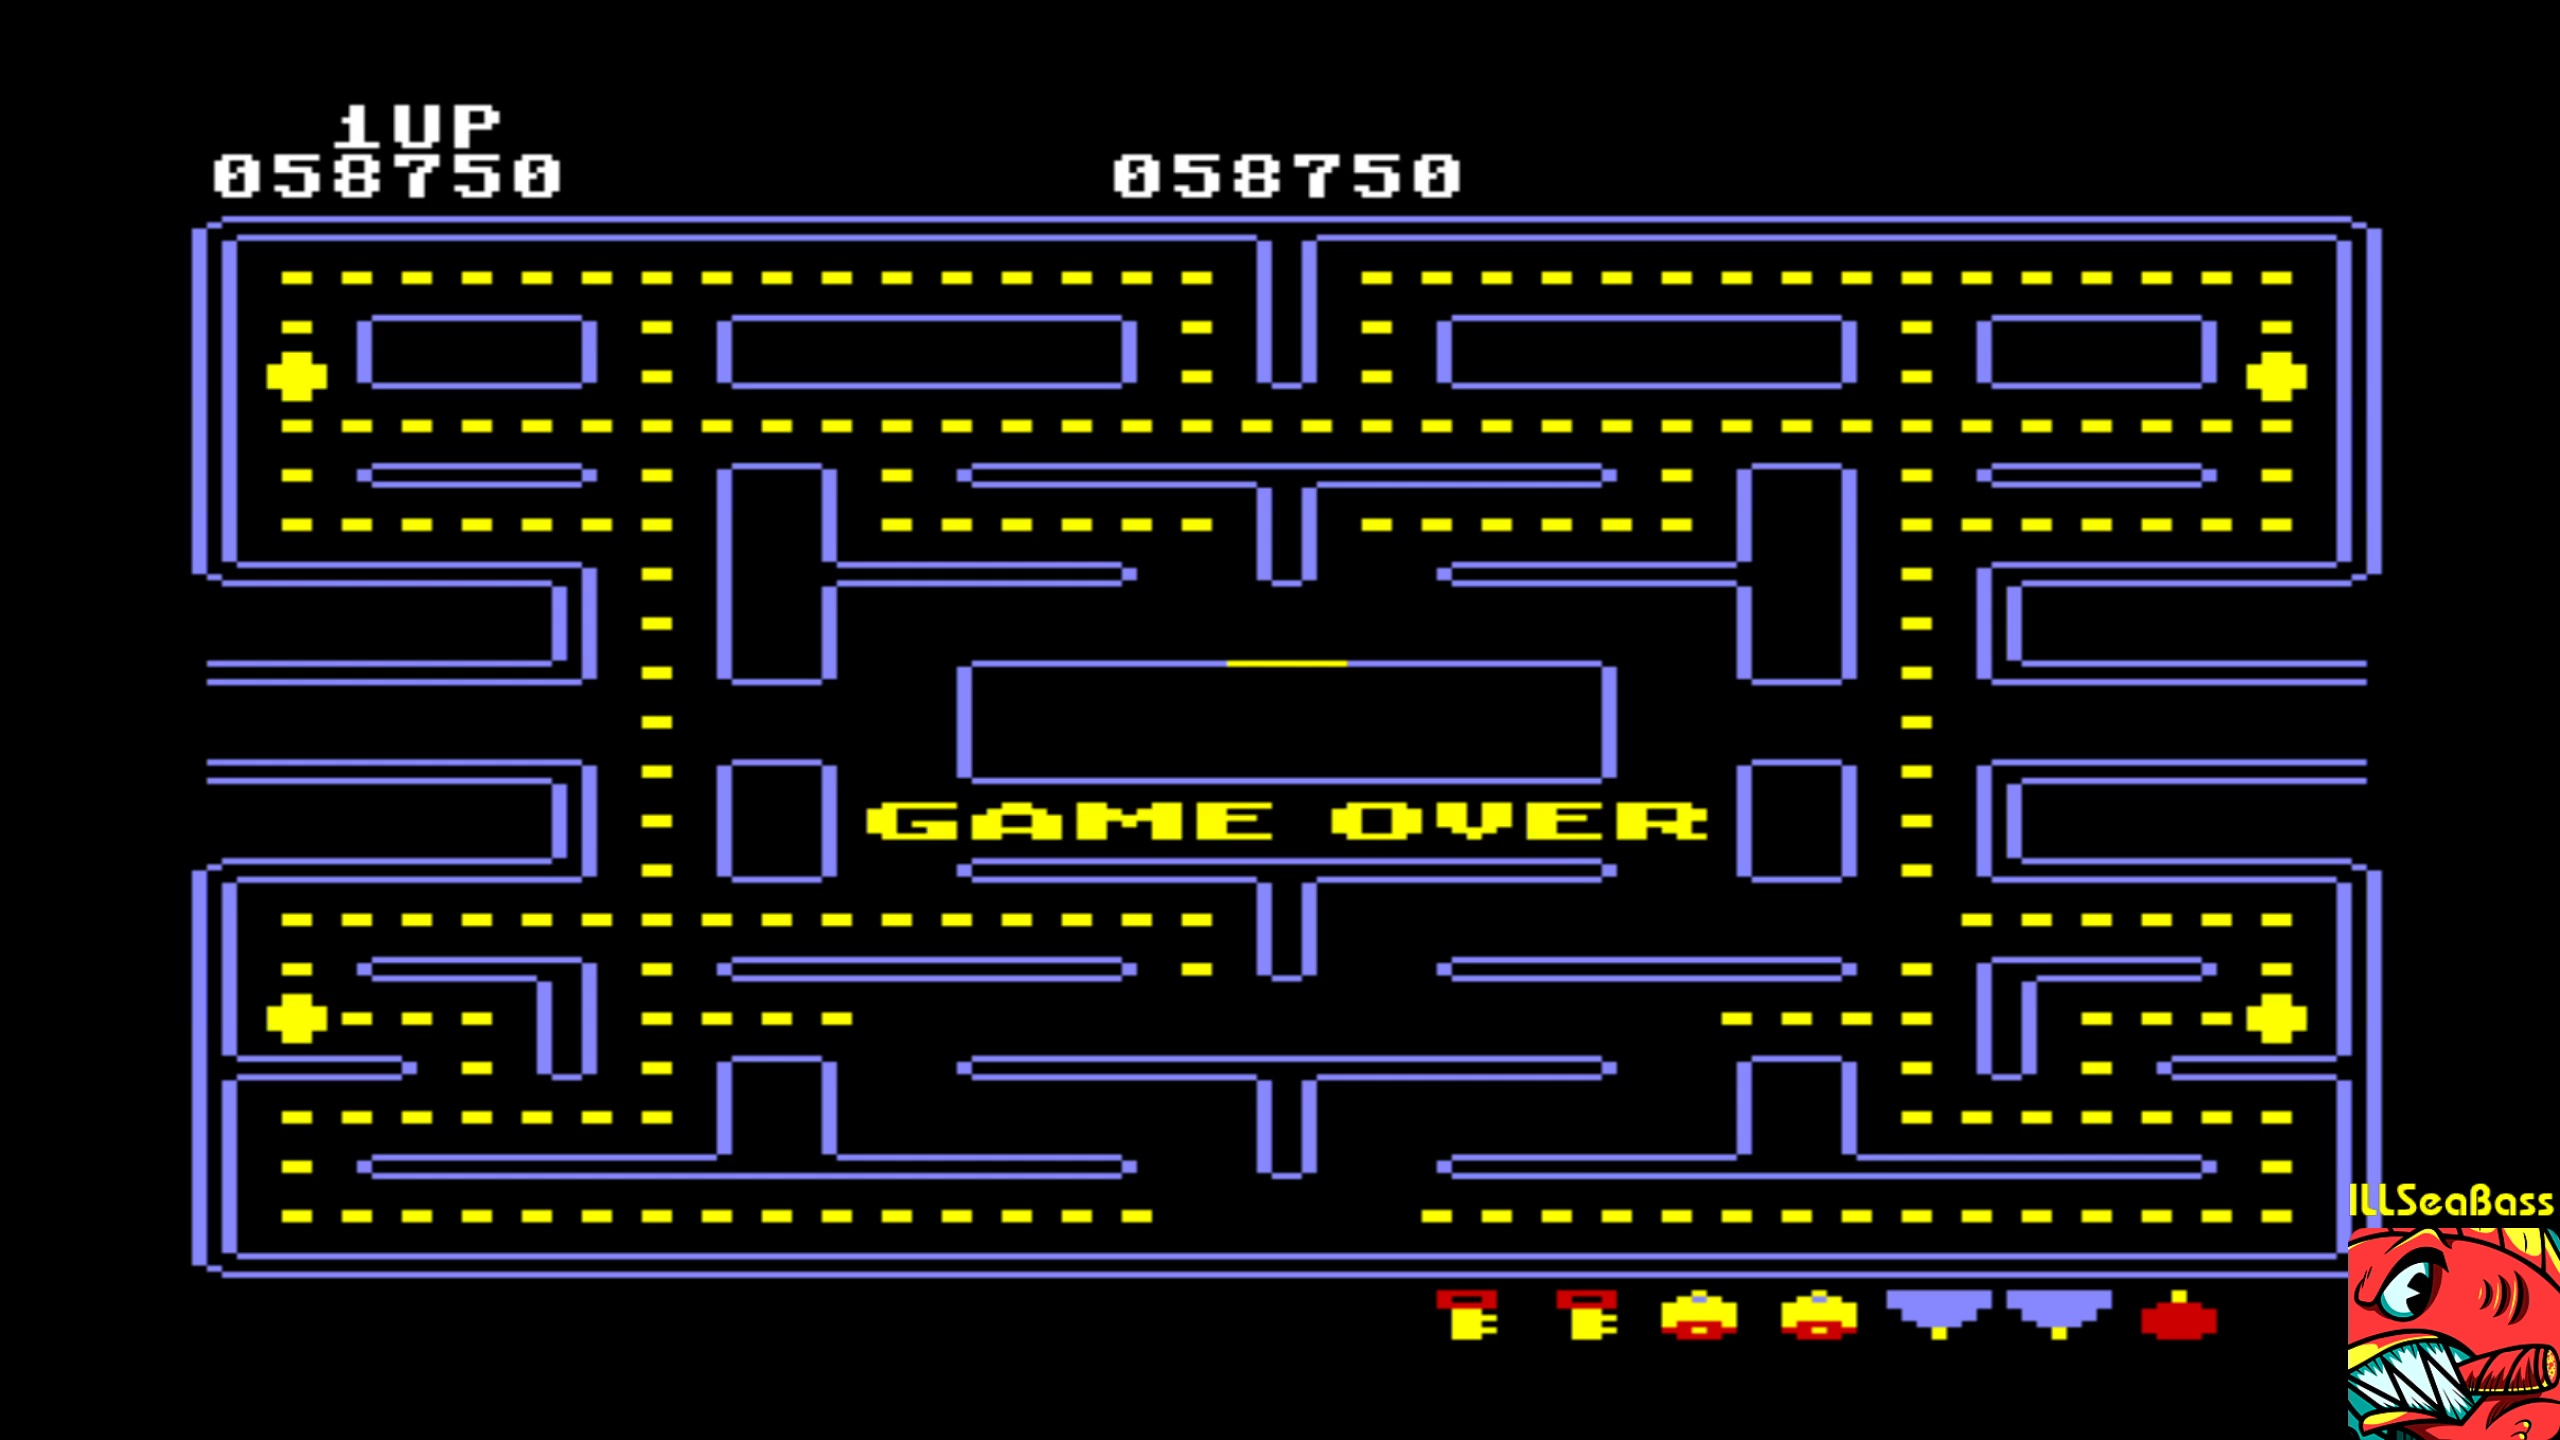 ILLSeaBass: Pac-Man [Plum start] (Commodore 64 Emulated) 58,750 points on 2018-02-12 02:02:17